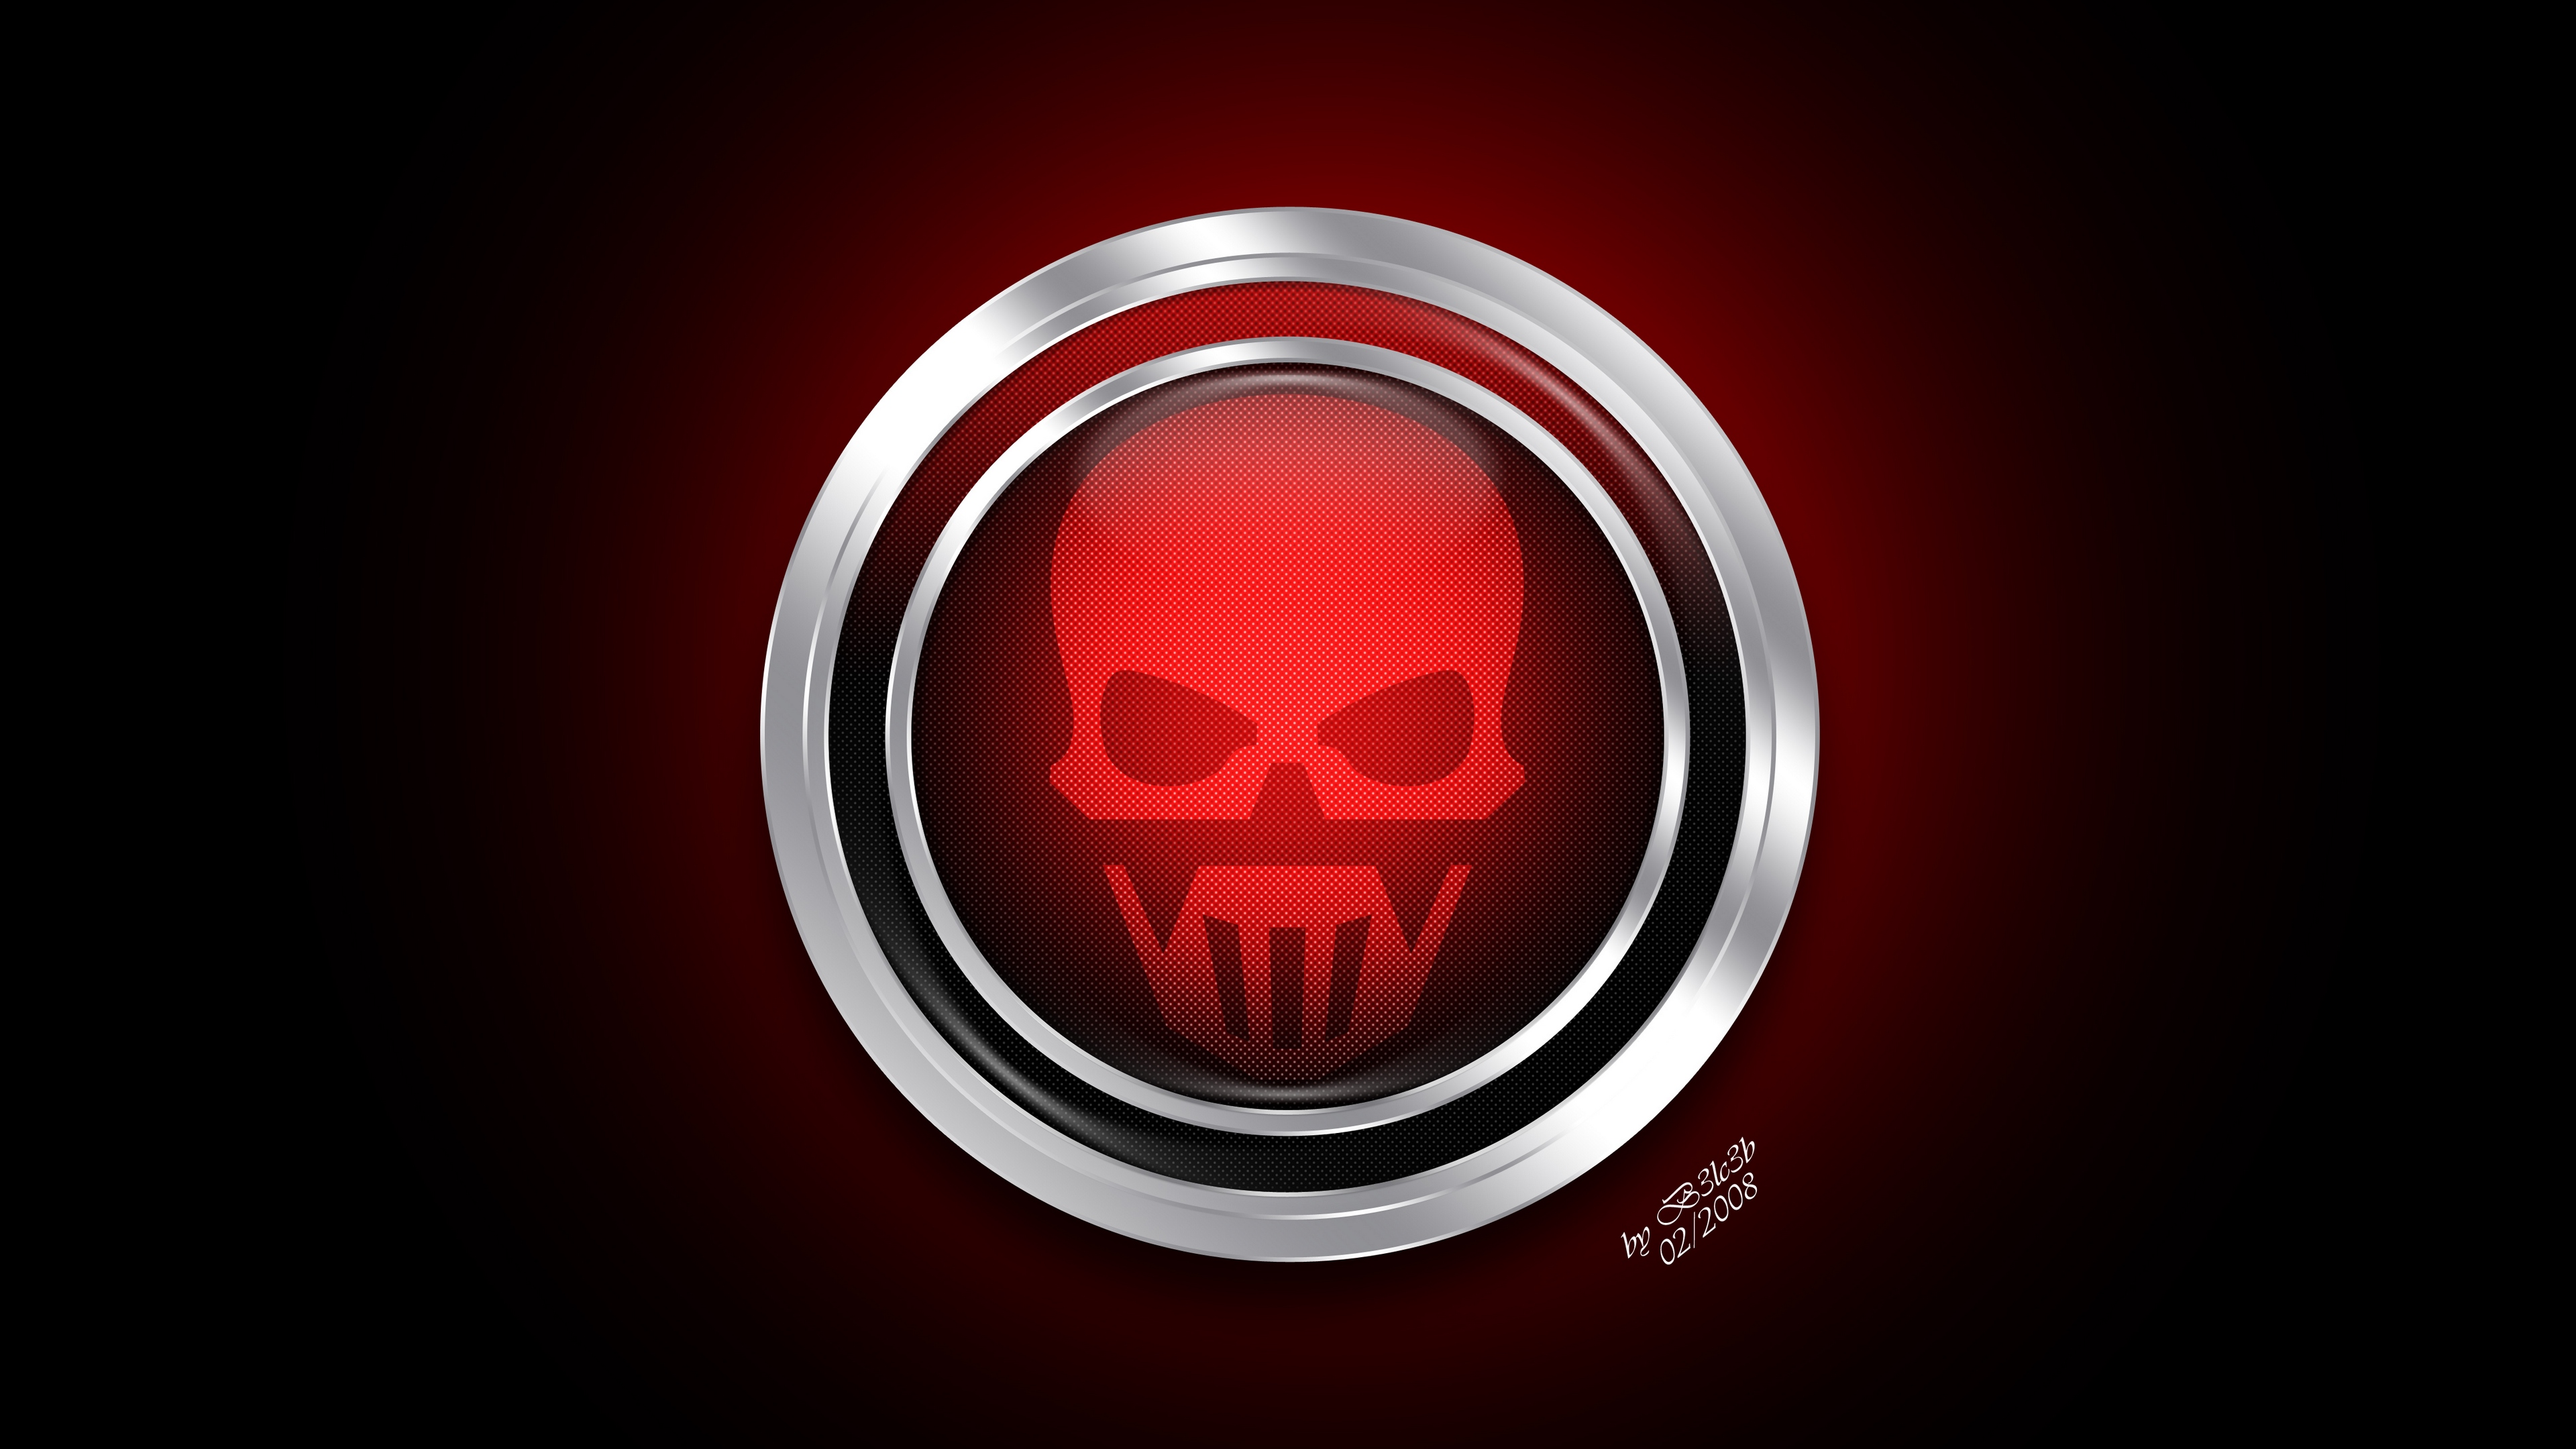 ghost recon future soldier logo red 4k 1538945000 - ghost recon, future soldier, logo, red 4k - Logo, ghost recon, future soldier